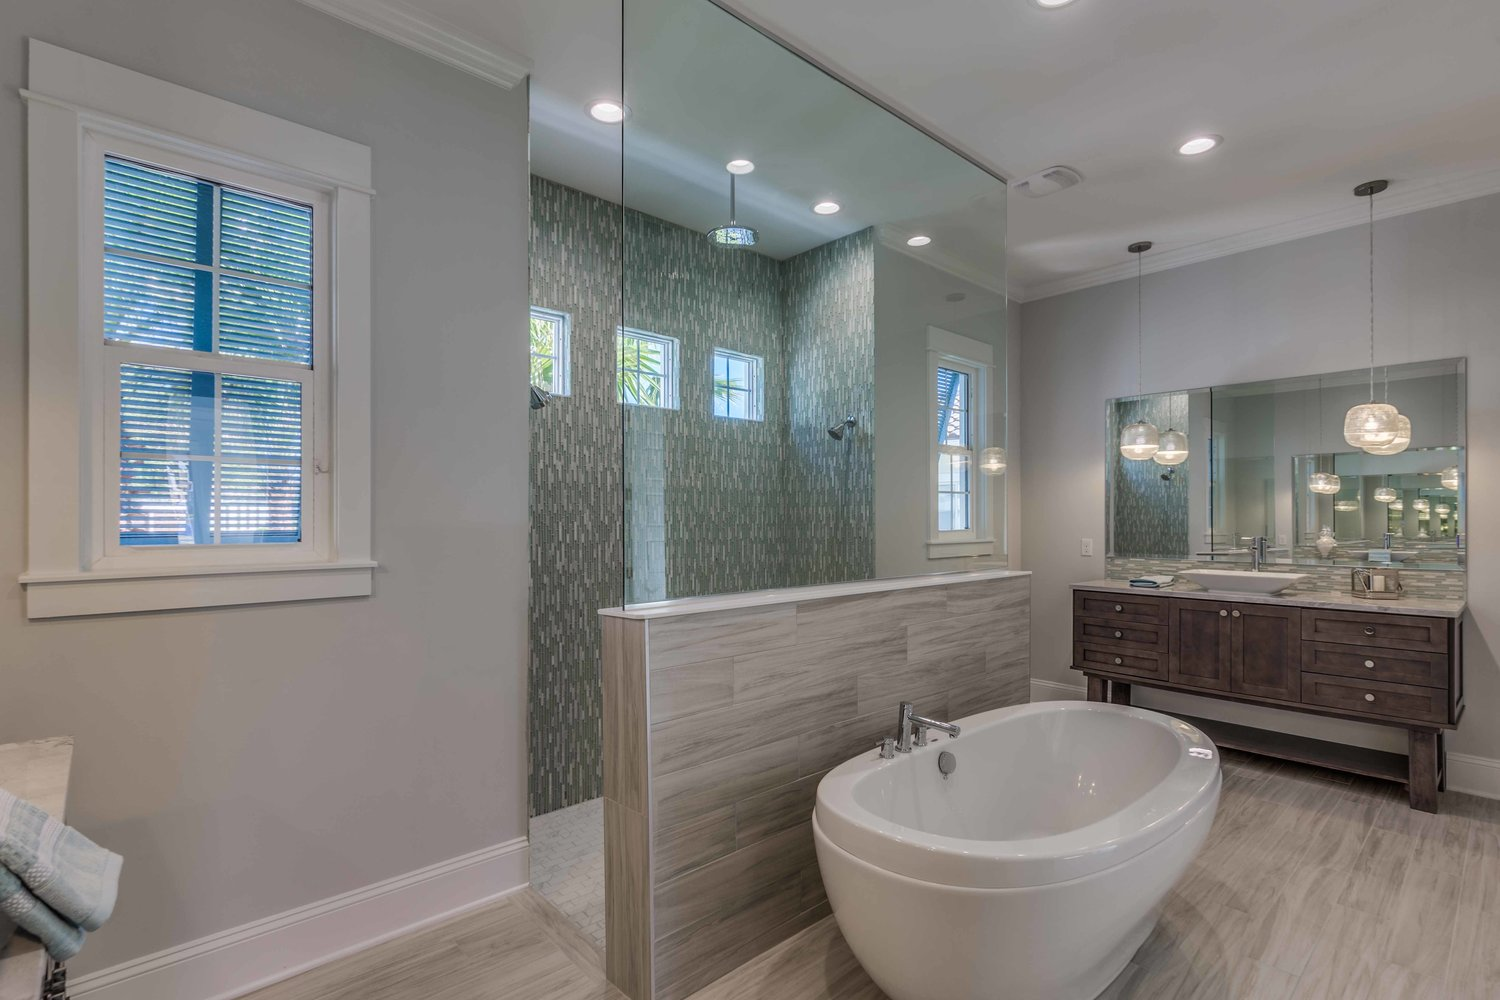 Owners bath new construction consult tile 1 jones sweet for Bathroom designs companies